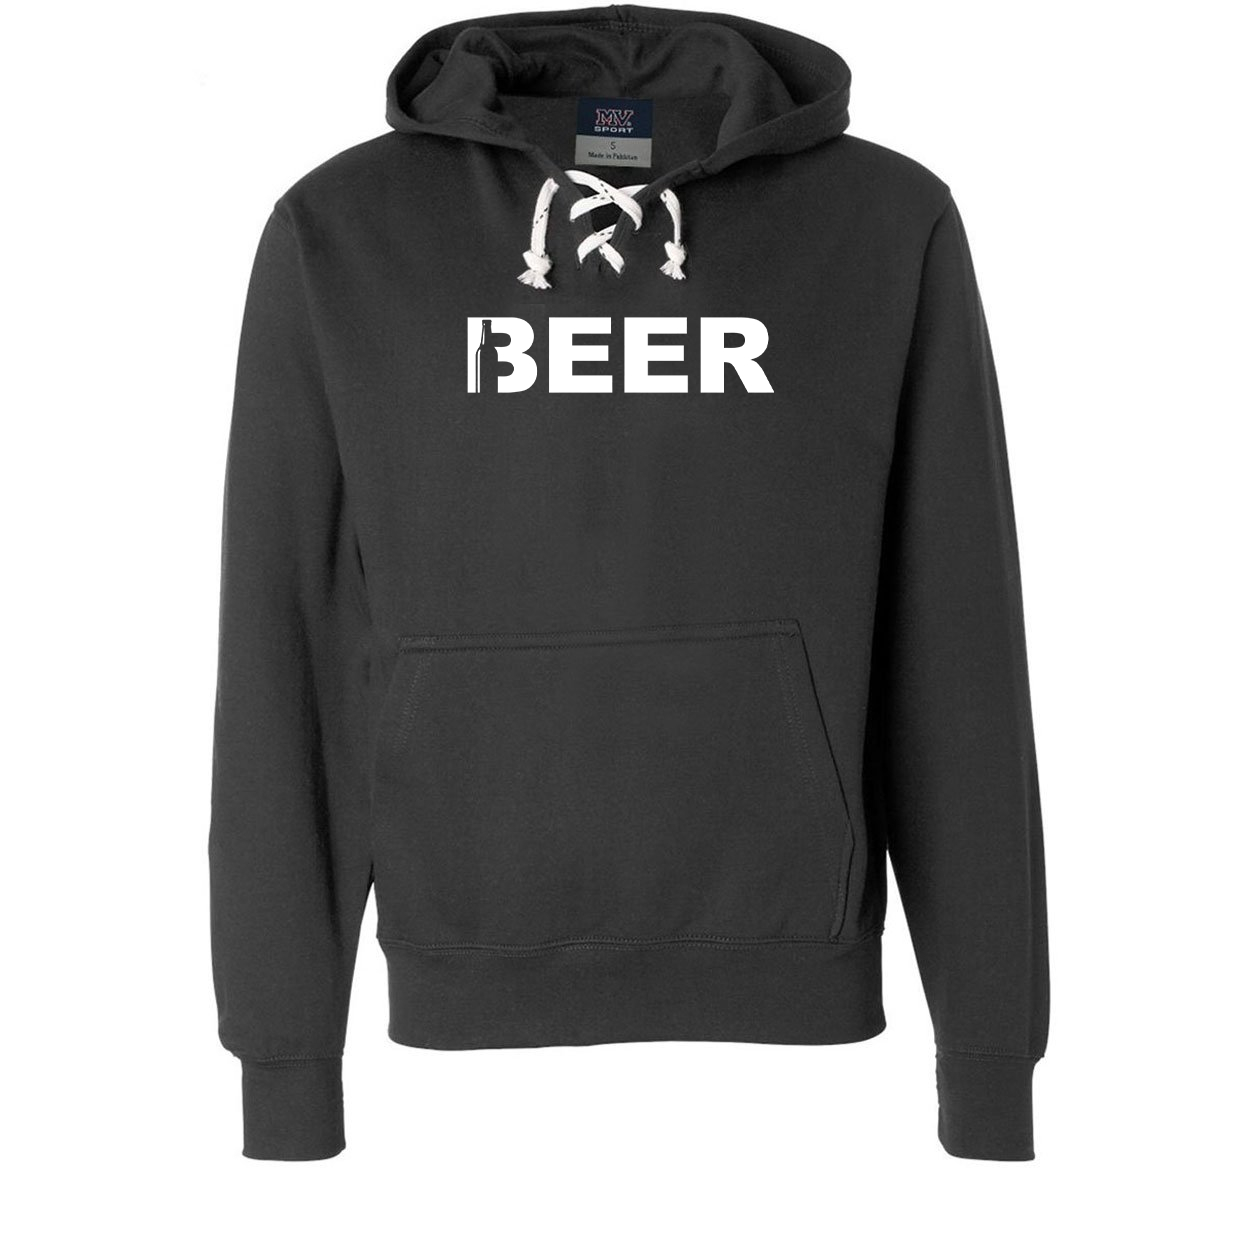 Beer Bottle Logo Classic Unisex Premium Hockey Sweatshirt Black (White Logo)